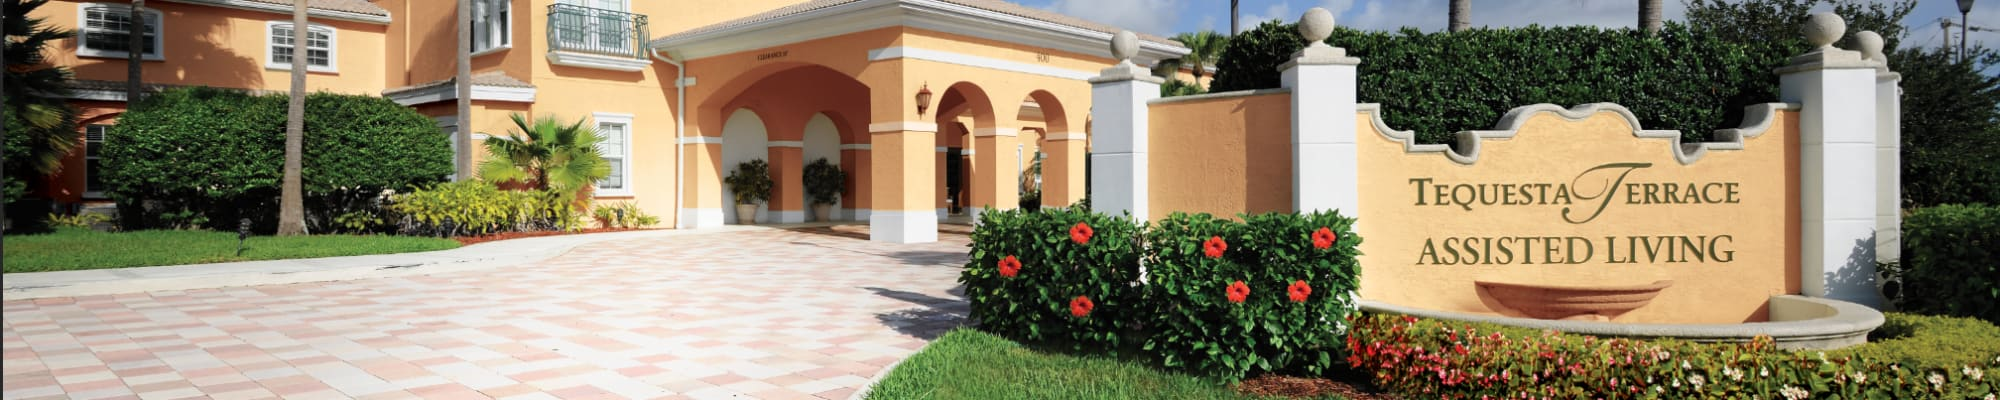 Services offered at Tequesta Terrace in Tequesta, Florida